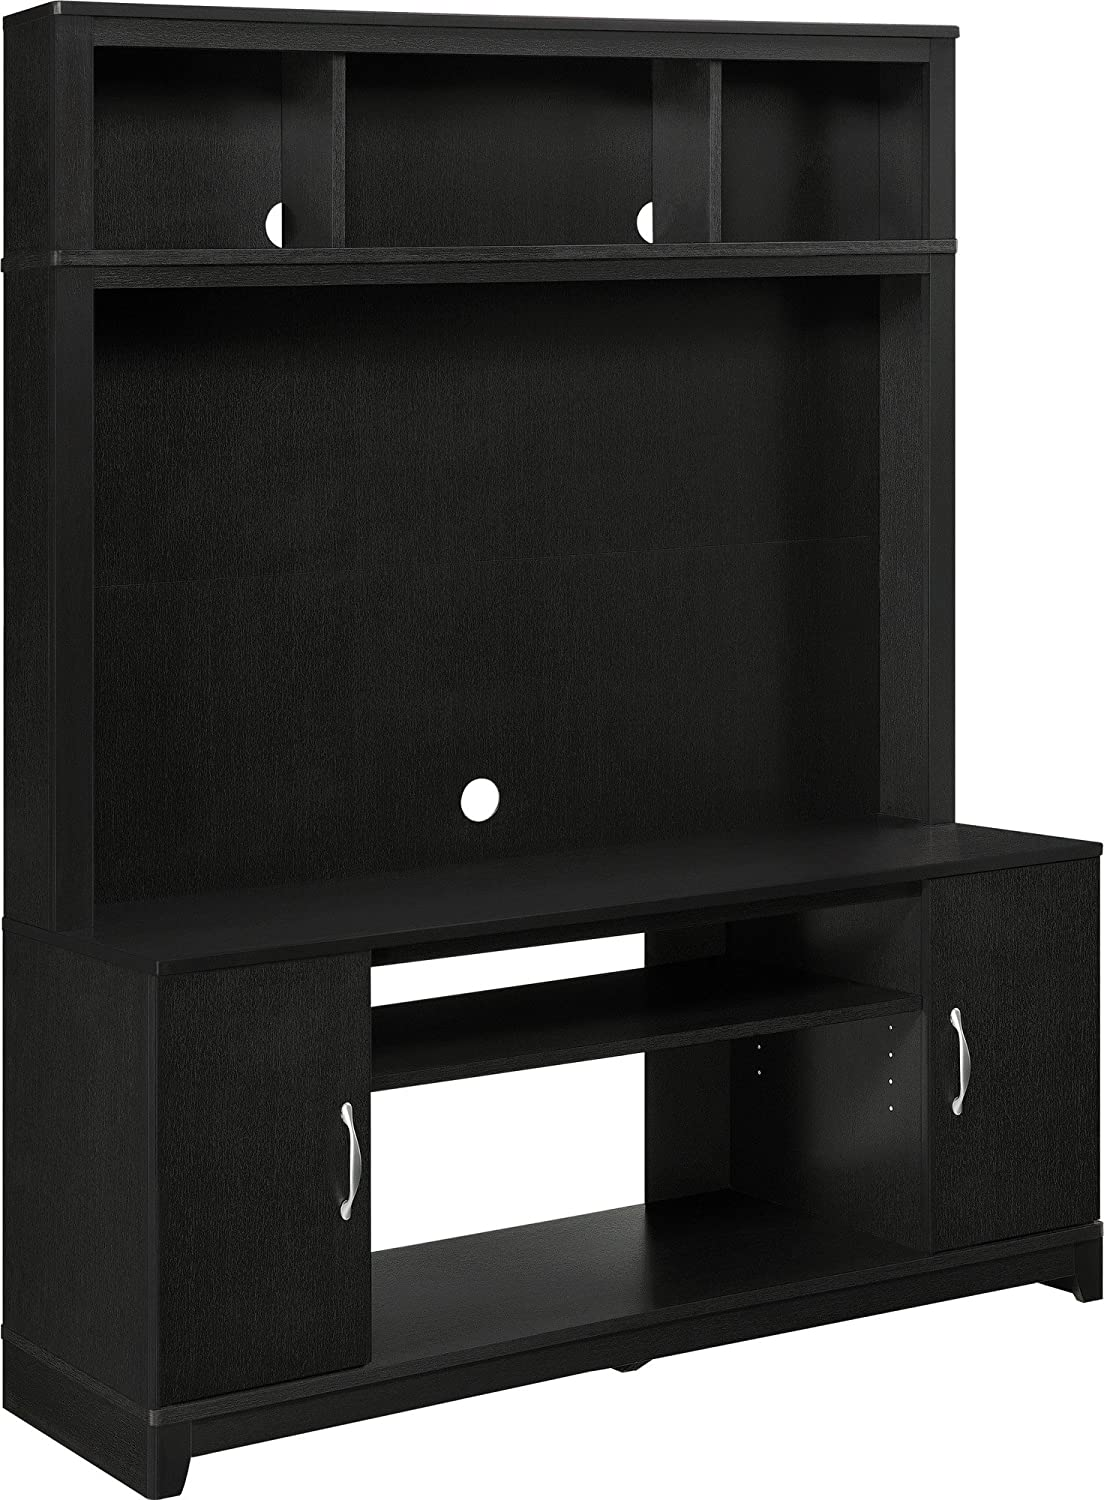 Amazon.com: Home TV Stands Wood Entertainment Media Center For Flat Console  Screens With Storage Wall Unit T.V. Furniture Set: Kitchen U0026 Dining